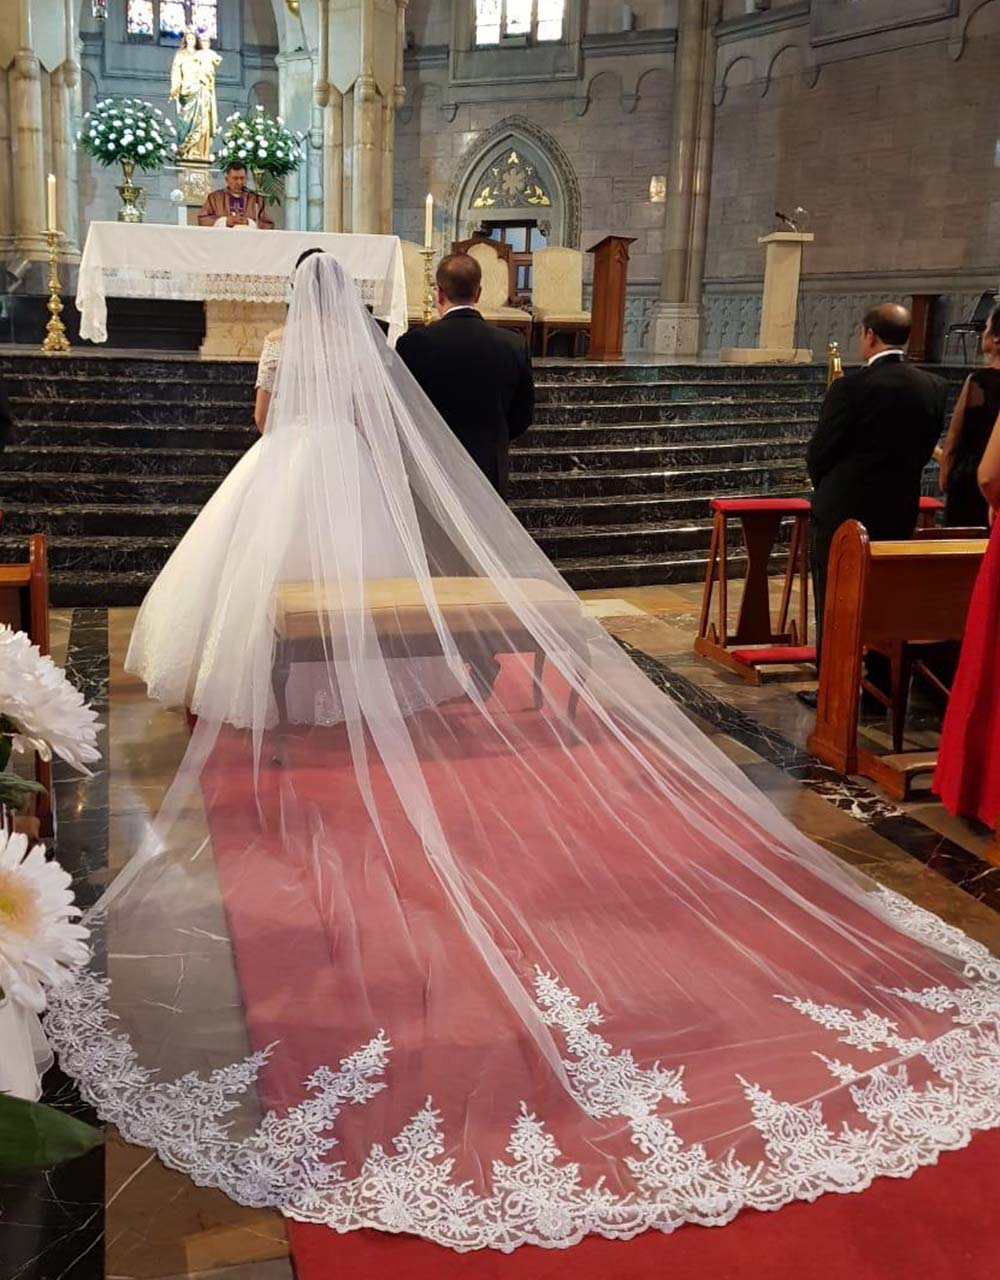 High Quality Long 4 Meters Lace Wedding Veil One Layer 4M Bridal Veil With Comb Wedding Accessories 2019 Welon